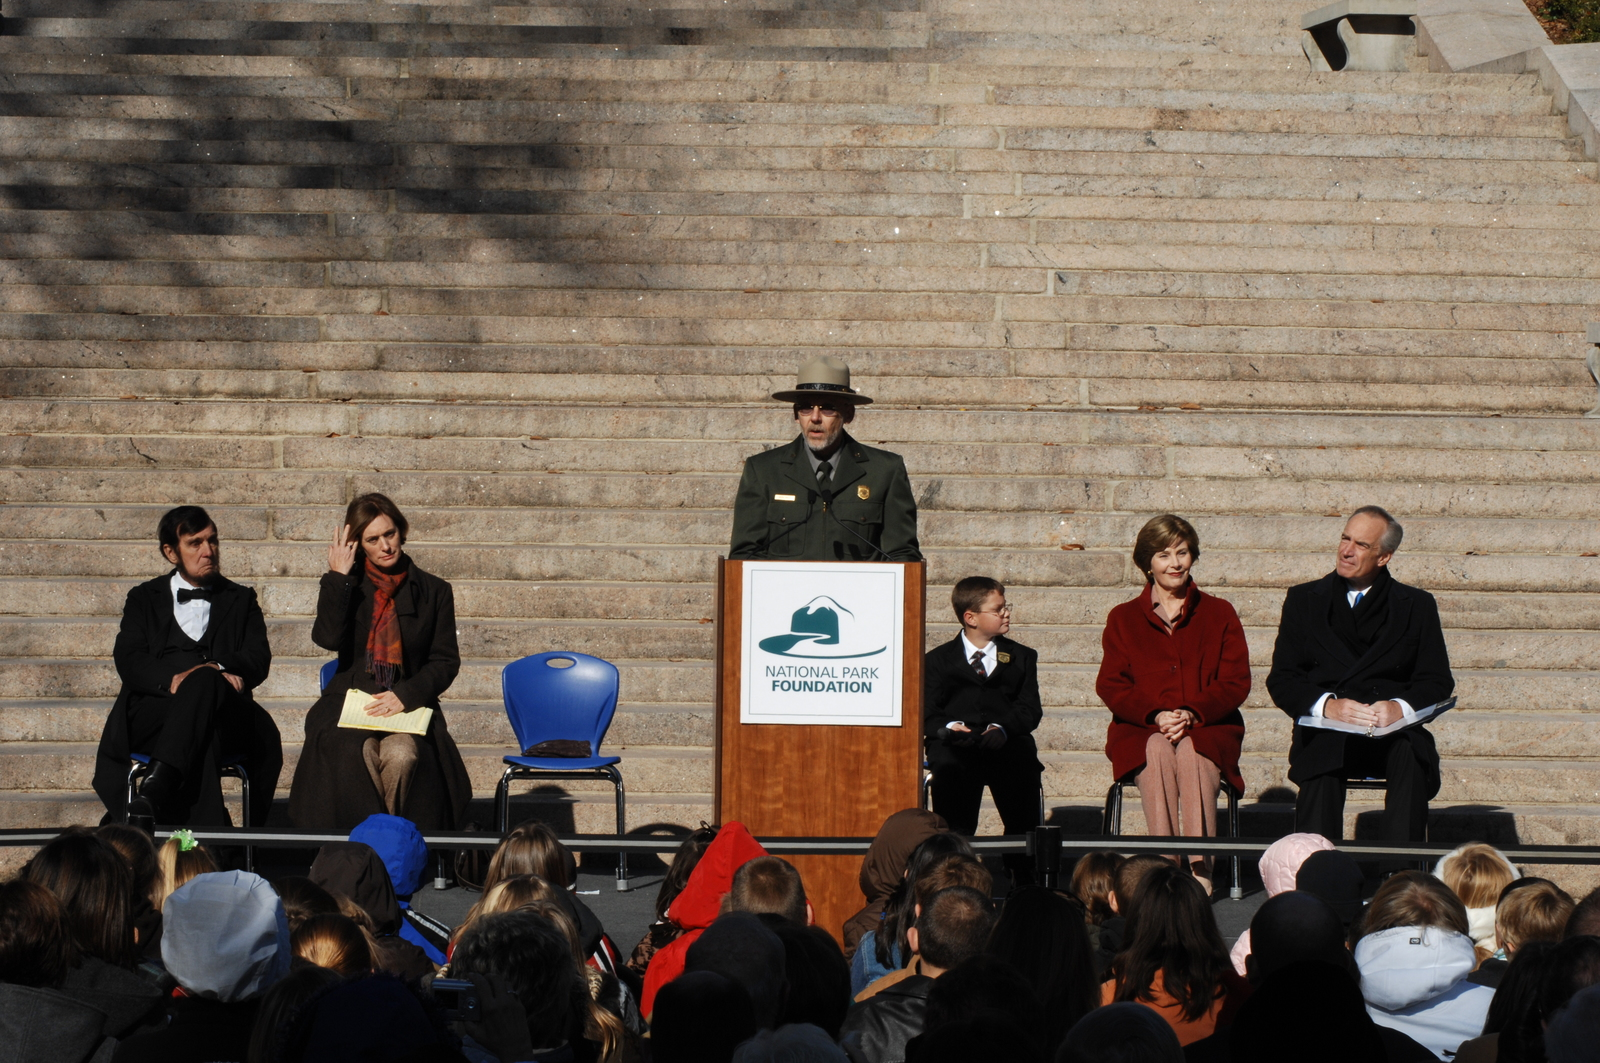 [Assignment: 48-DPA-11-18-08_SOI_K_FLOTUS] Visit of Secretary Dirk Kempthorne to the Abraham Lincoln Birthplace National Historic Site in Hodgenville, Kentucky, where he joined First Lady Laura Bush, [Historic Site Superintendent Keith Pruitt, and Libby O'Connell, Chief Historian of A and E Television's History Channel, for tours, remarks, interactions with National Park Service staff and visitors] [48-DPA-11-18-08_SOI_K_FLOTUS_IOD_8050.JPG]